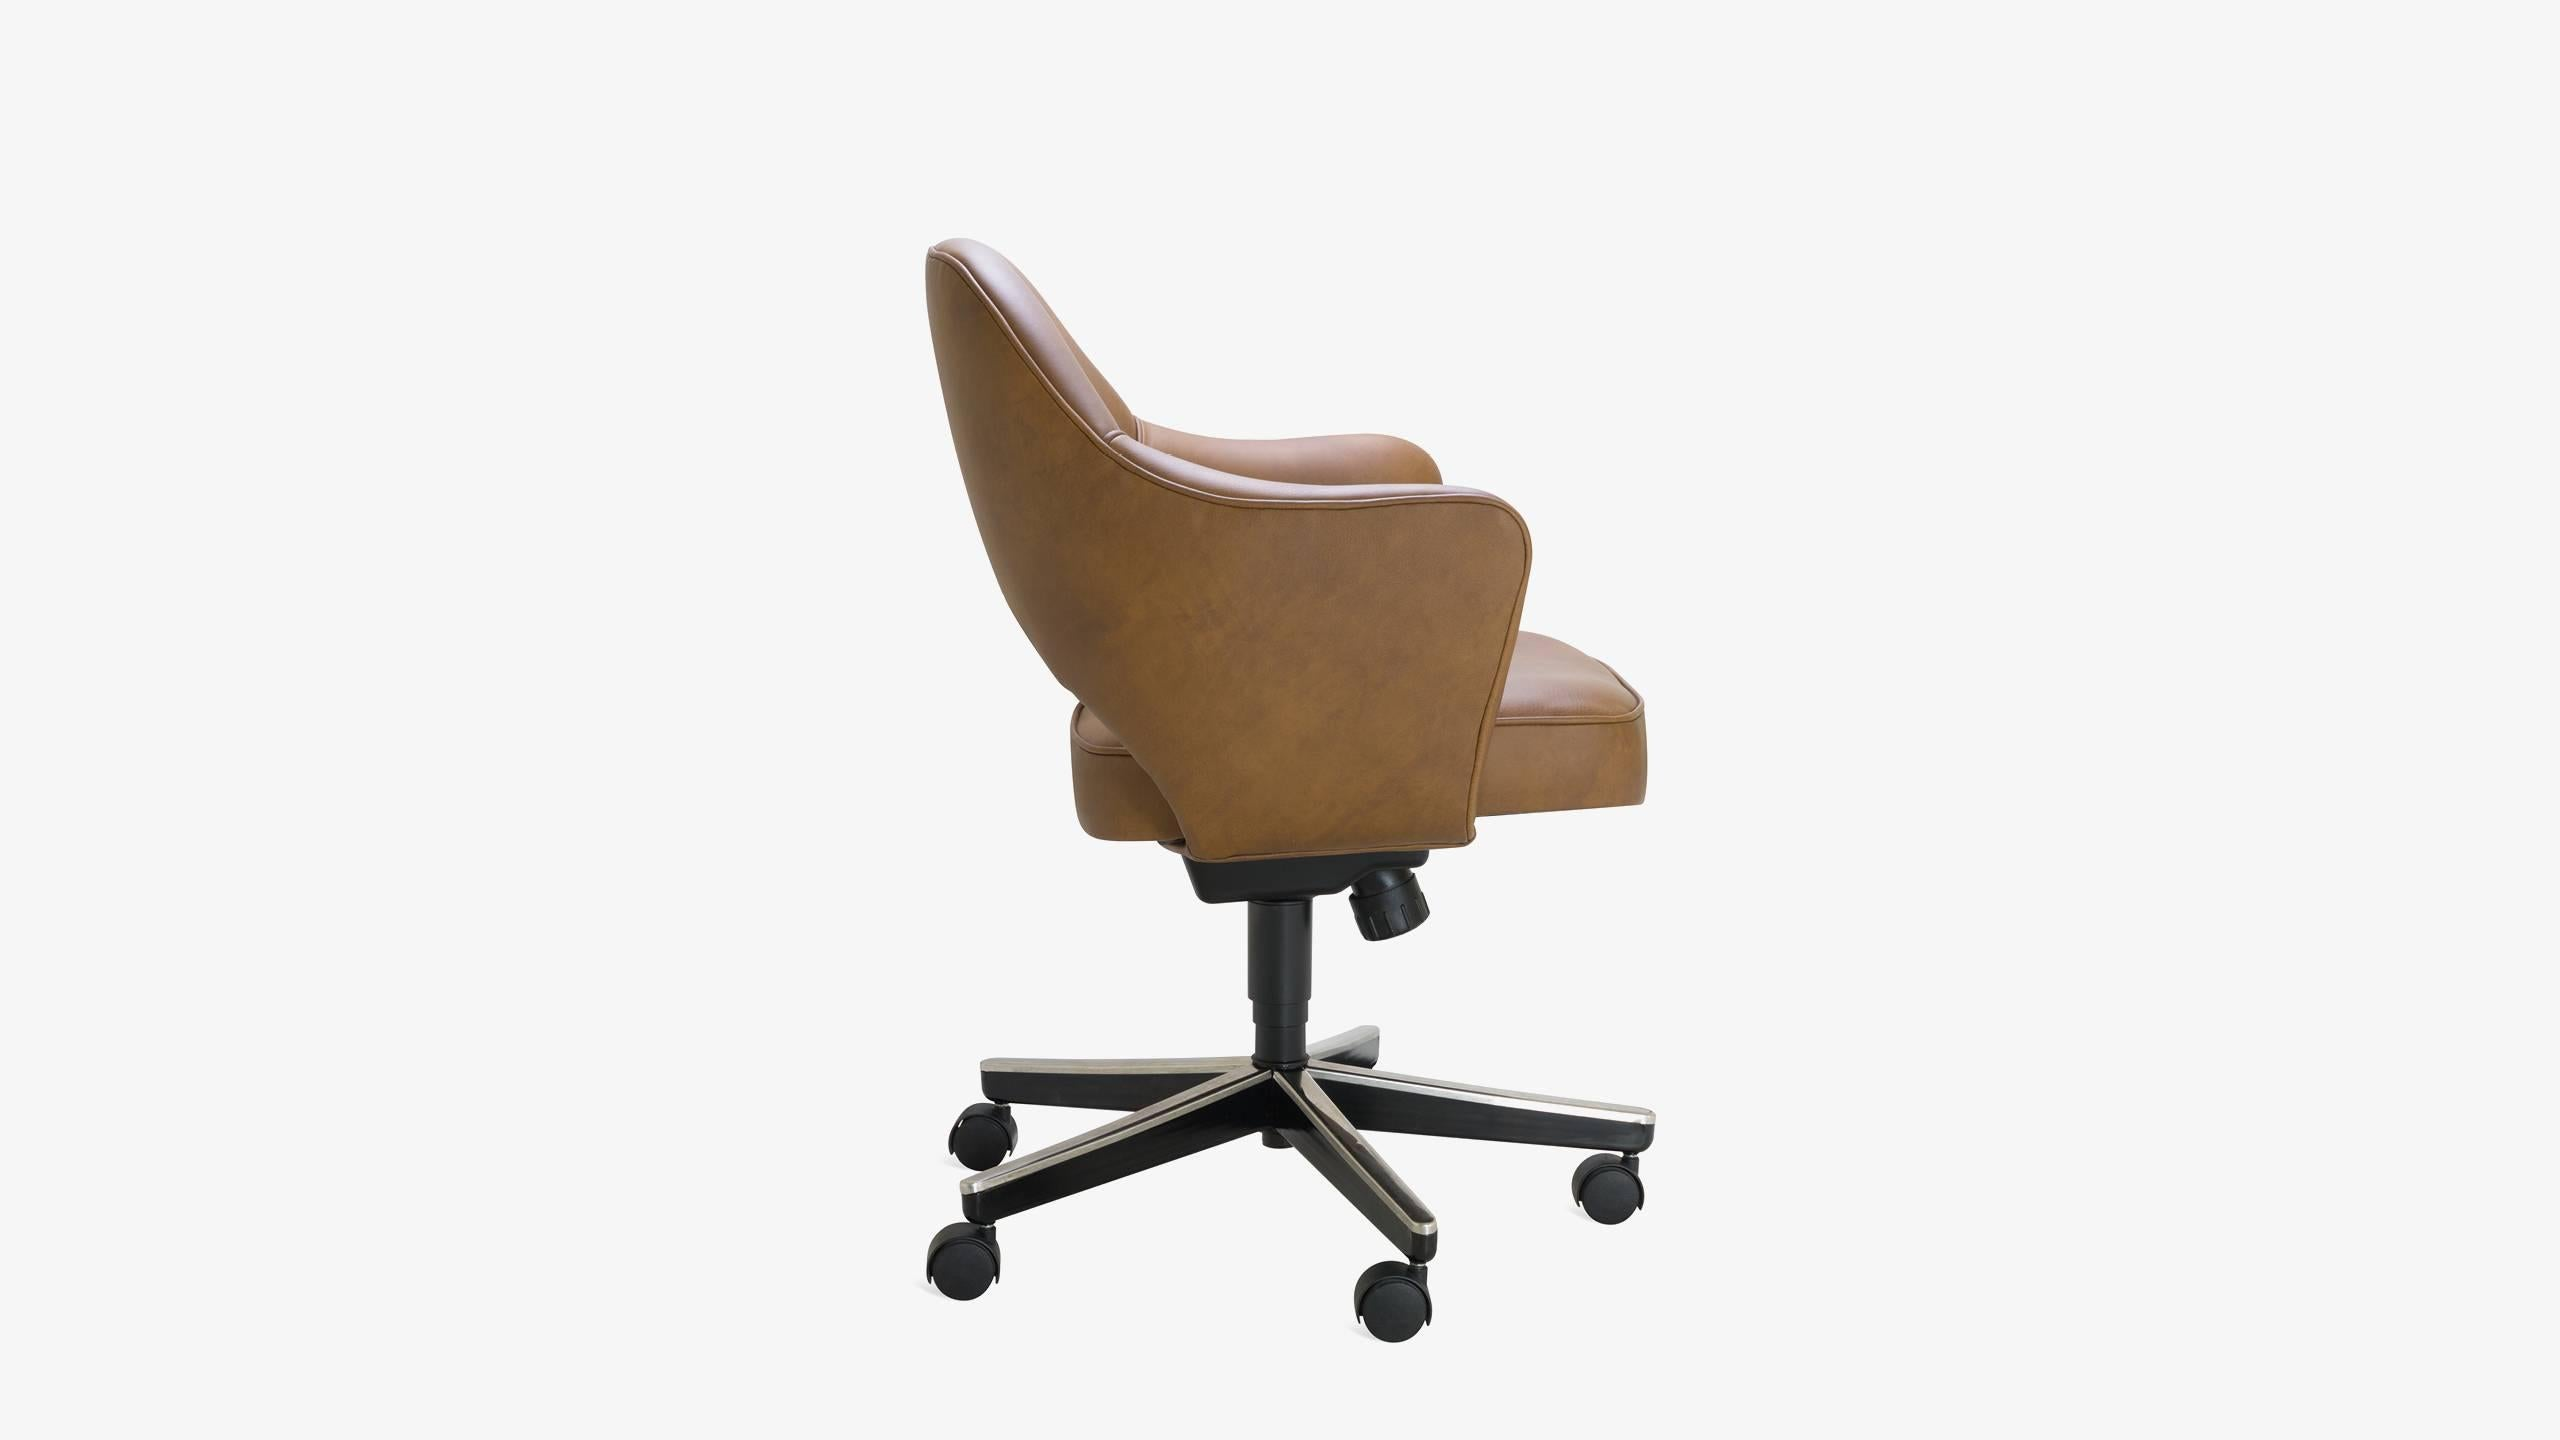 Saddle Office Chair Saarinen Executive Arm Chair In Saddle Leather Swivel Base